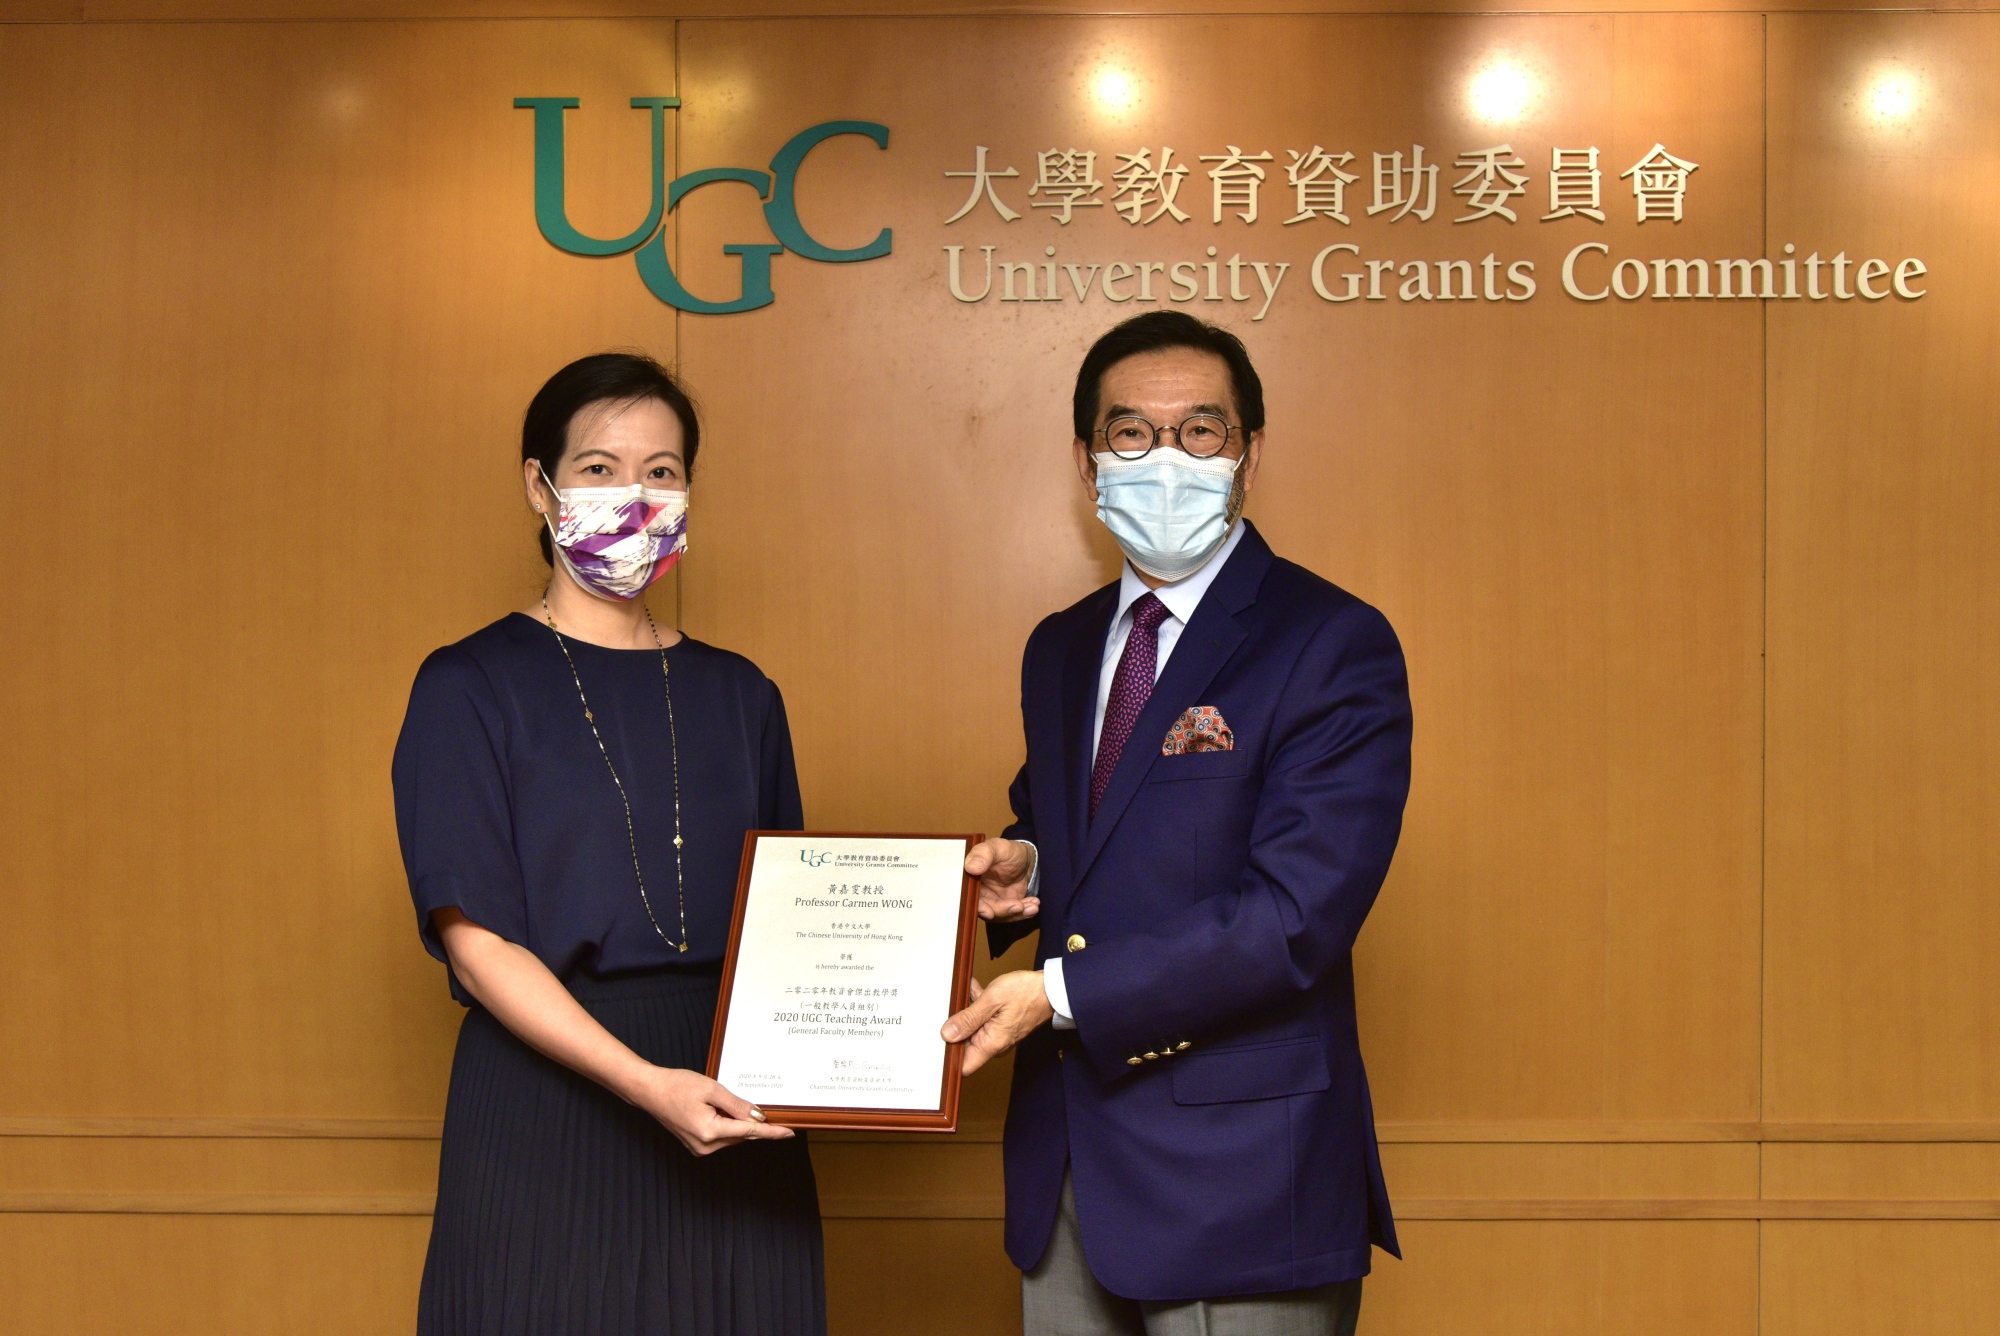 Dr. Carmen Wong (left) receives the award certificate from Mr. Carlson Tong, Chairman of UGC. (Photo provided by the organiser)